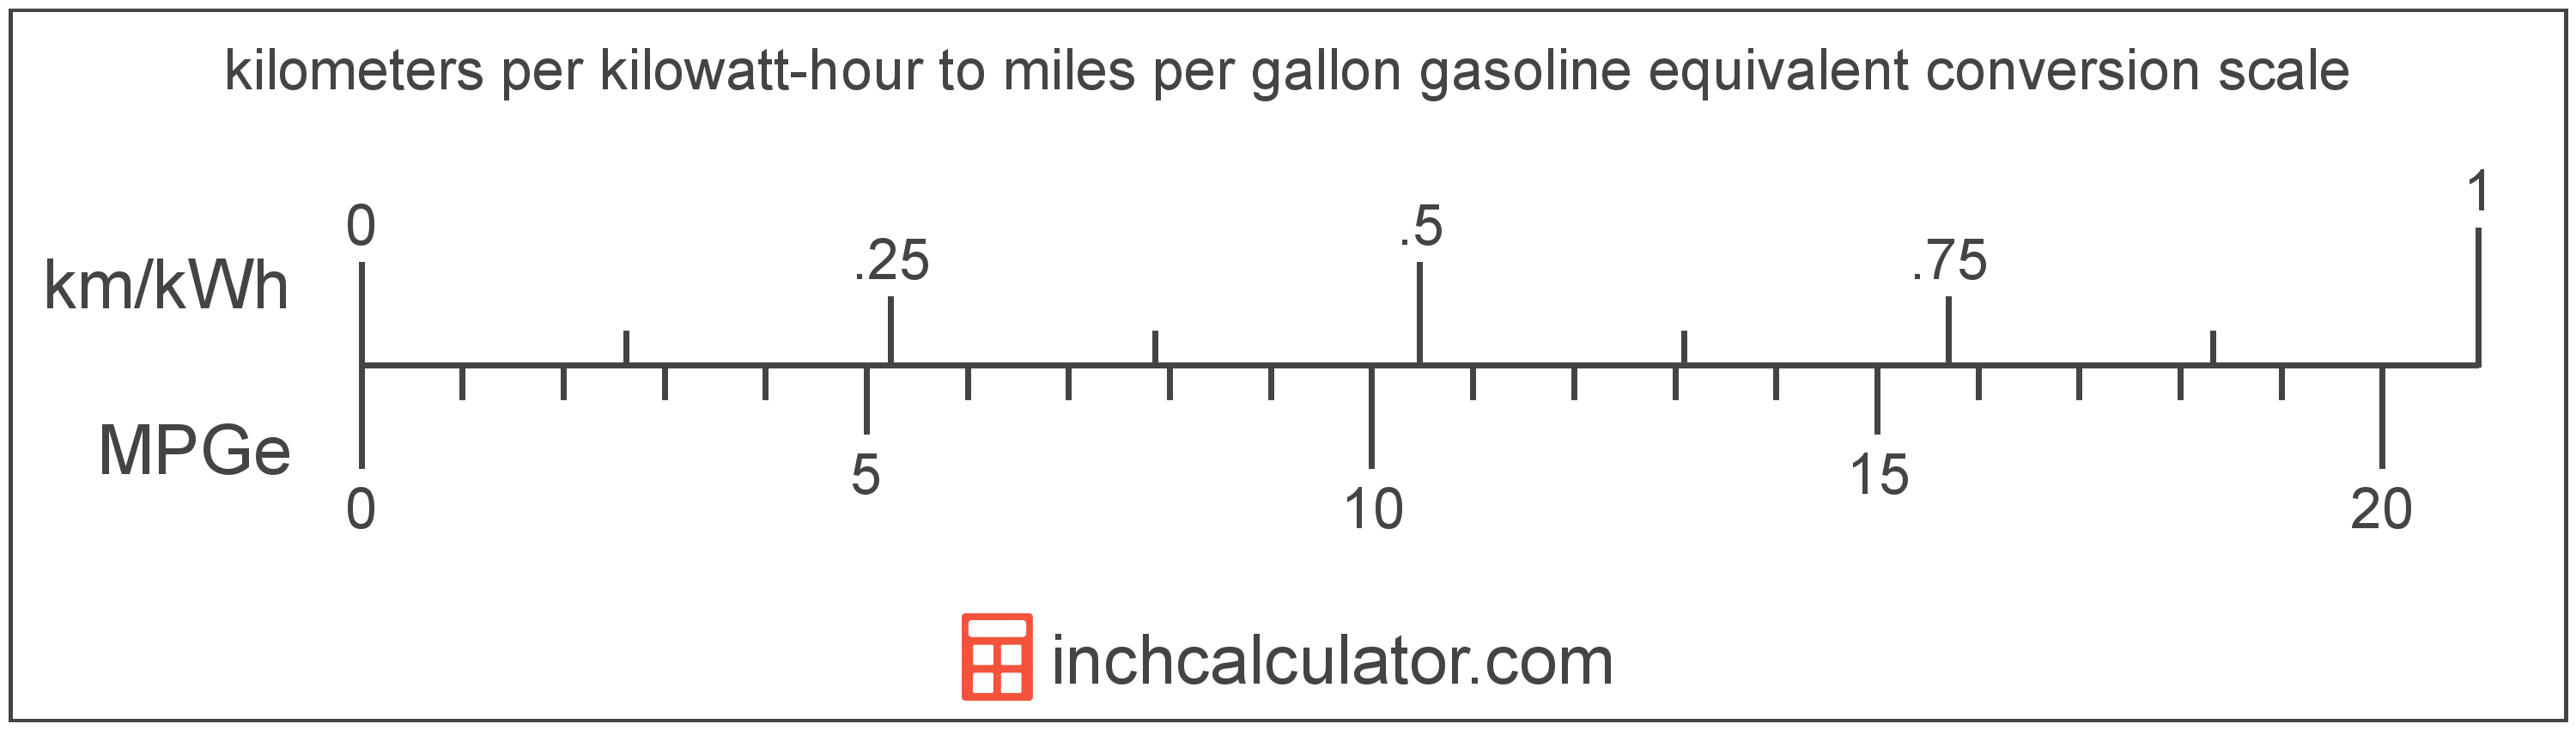 conversion scale showing miles per gallon gasoline equivalent and equivalent kilometers per kilowatt-hour electric car efficiency values